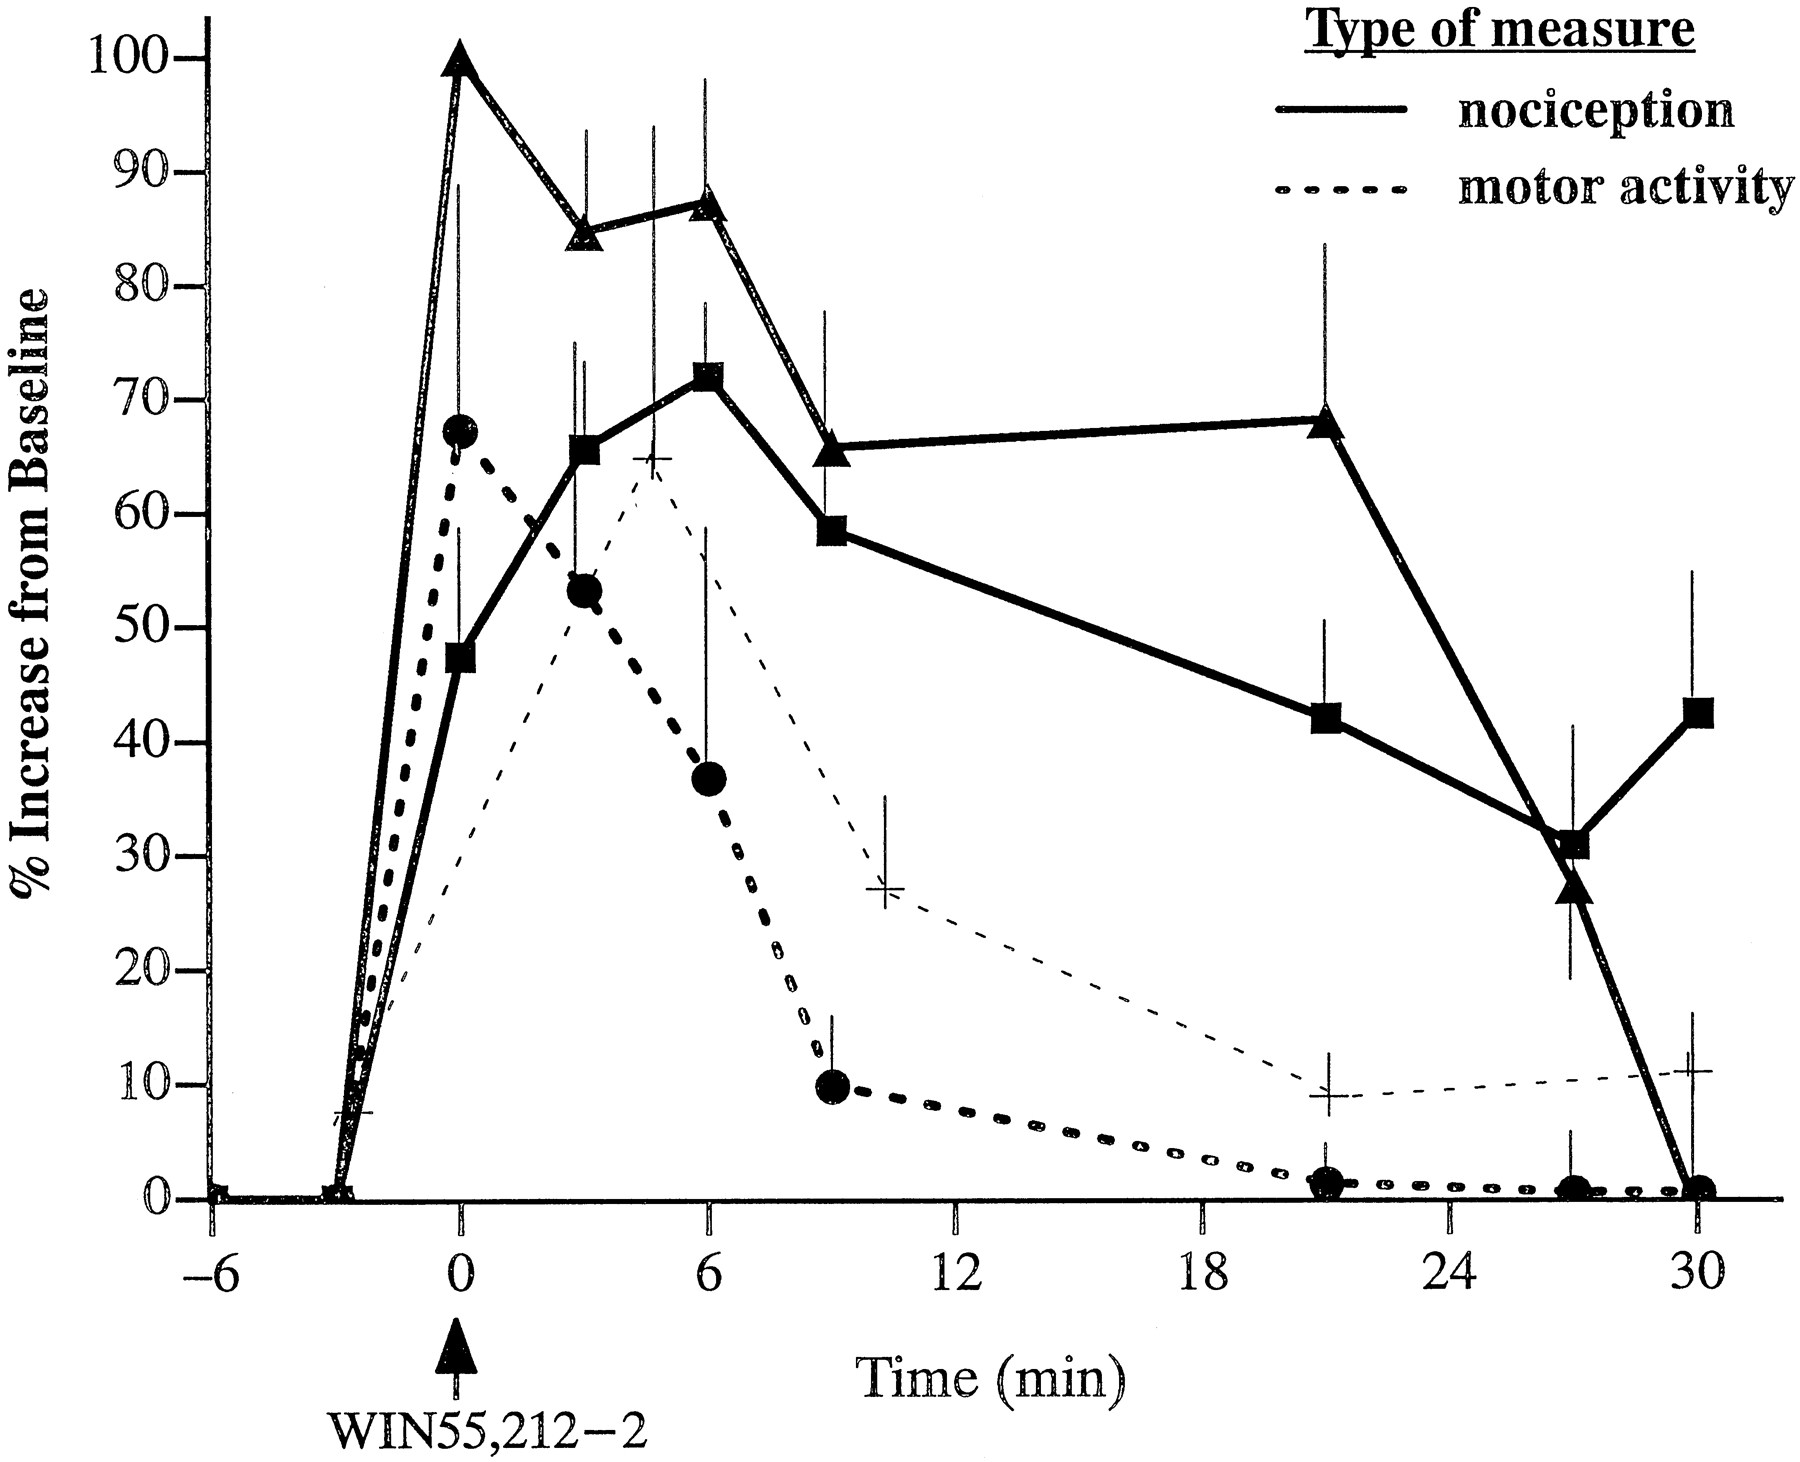 Suppression Of Noxious Stimulus Evoked Activity In The Ventral Series Electric Circuit Loublet Schematic Download Figure